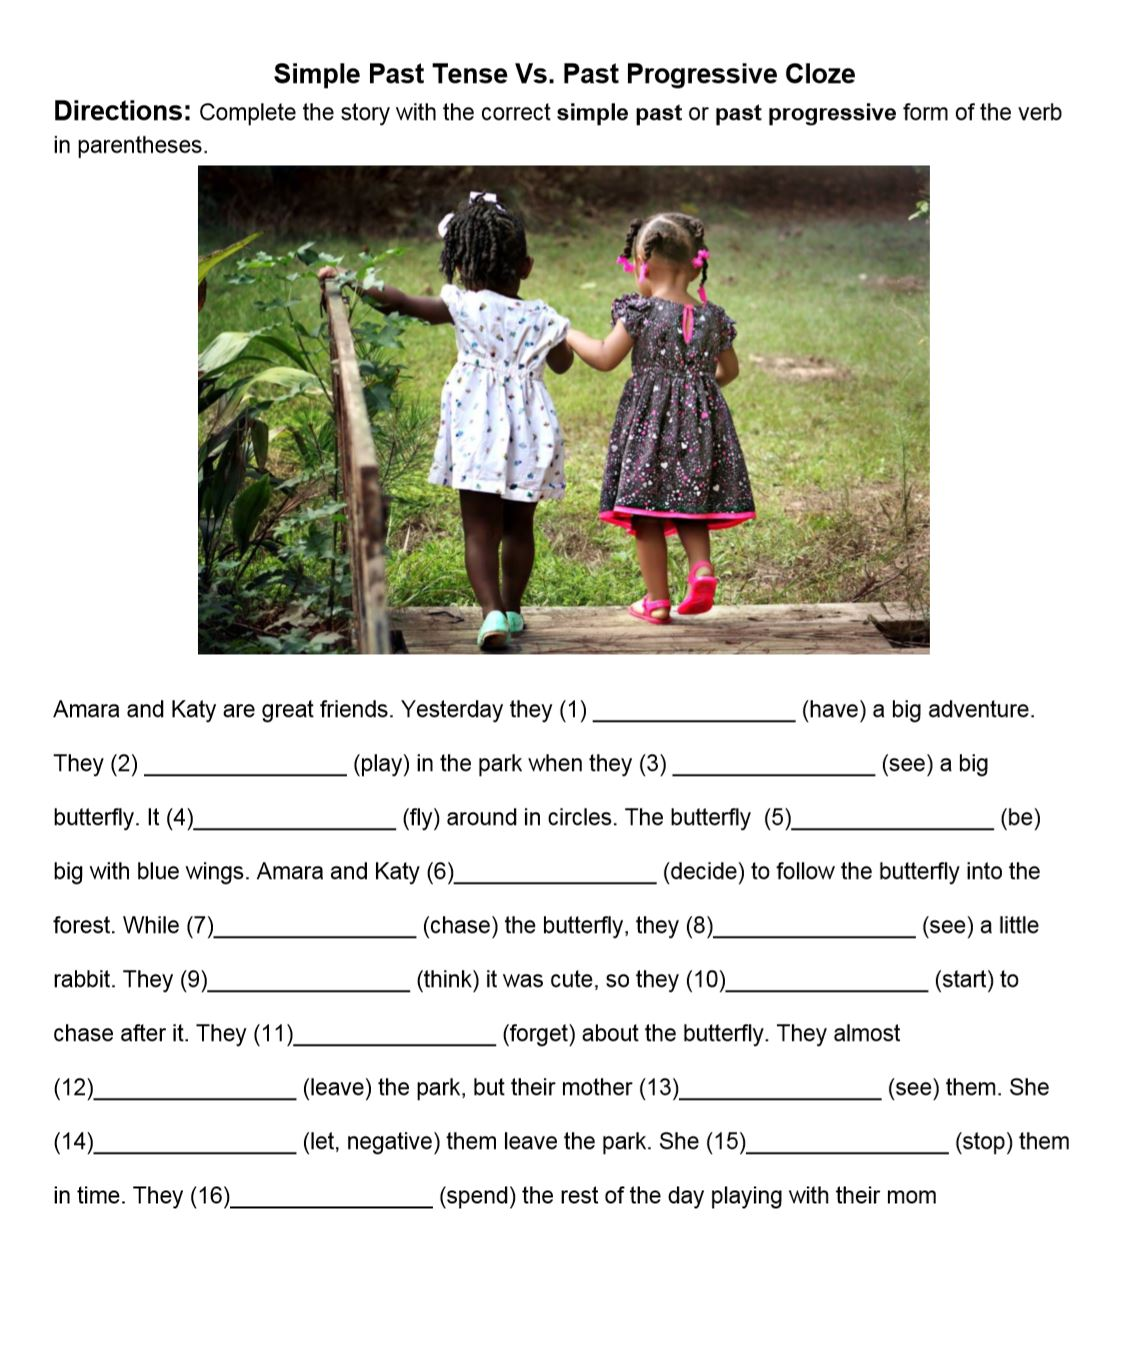 hight resolution of Simple Past Tense Cloze Paragraphs - TESOL Planner